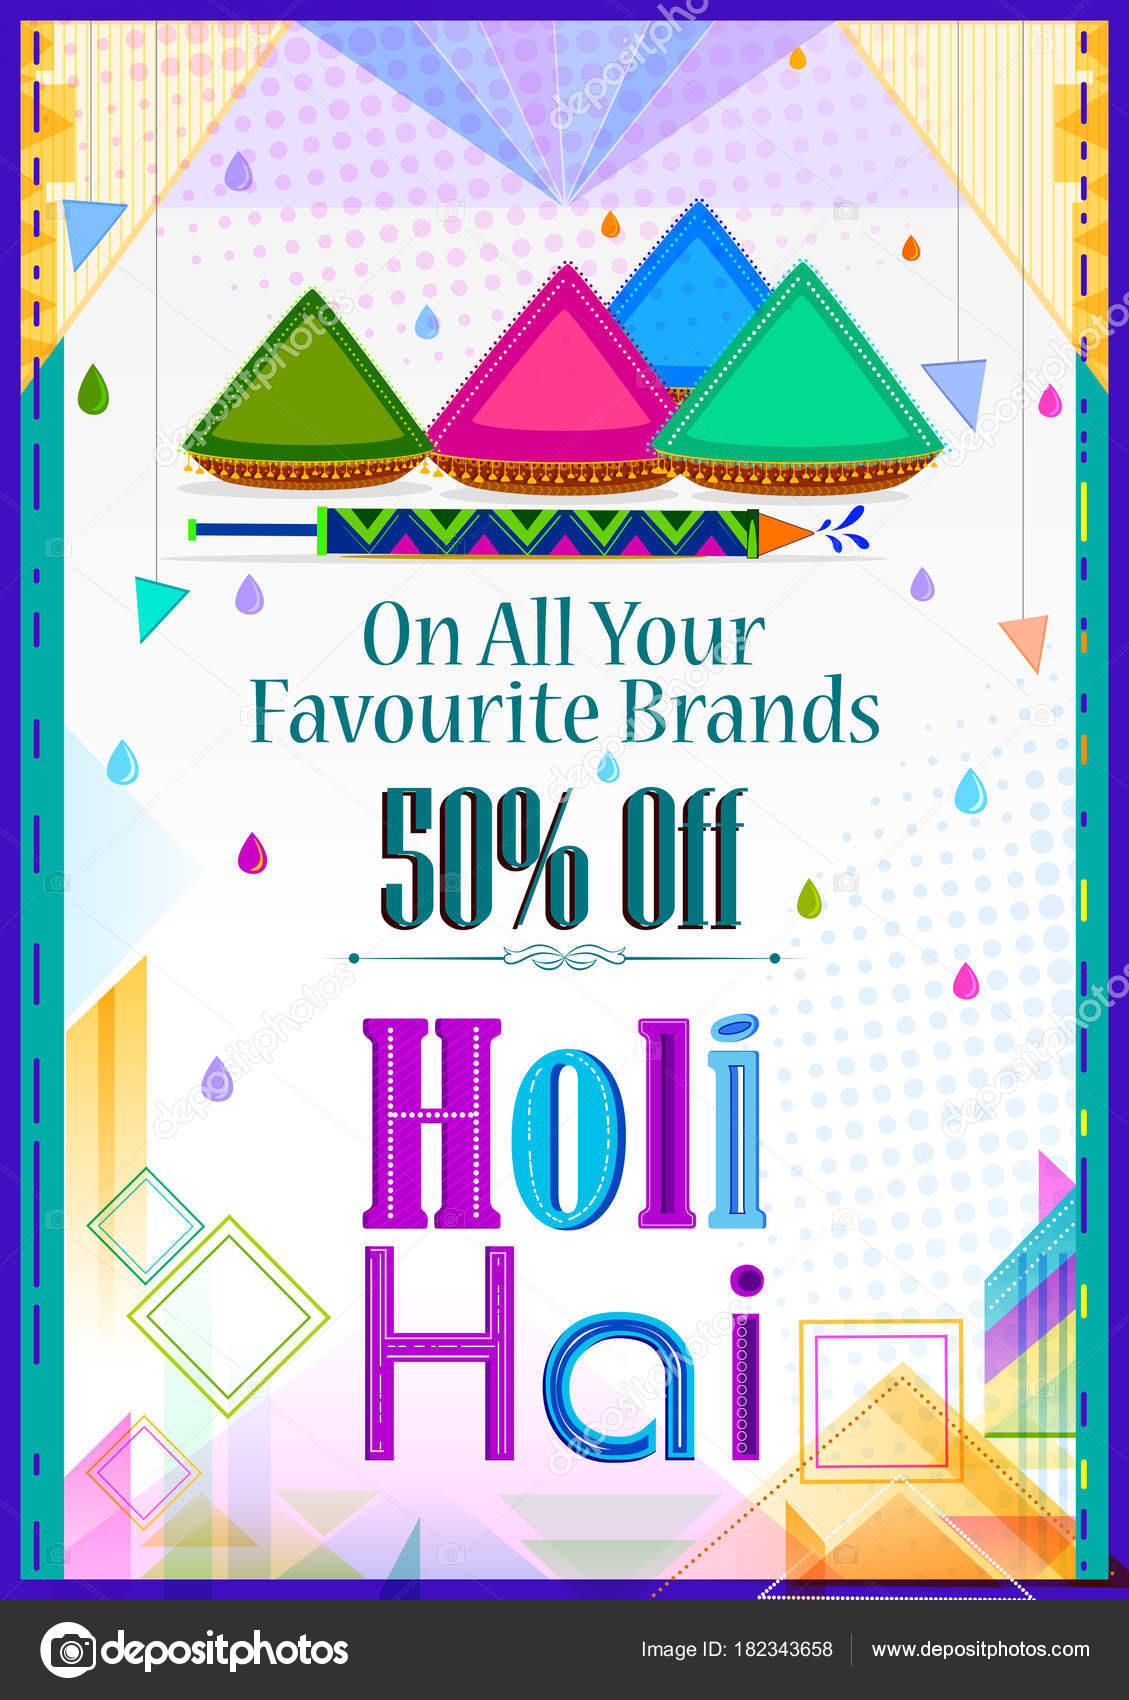 Colorful Traditional Holi Shopping Discount Offer Advertisement Background For Festival Of Colors India In Vector By Stockillustration